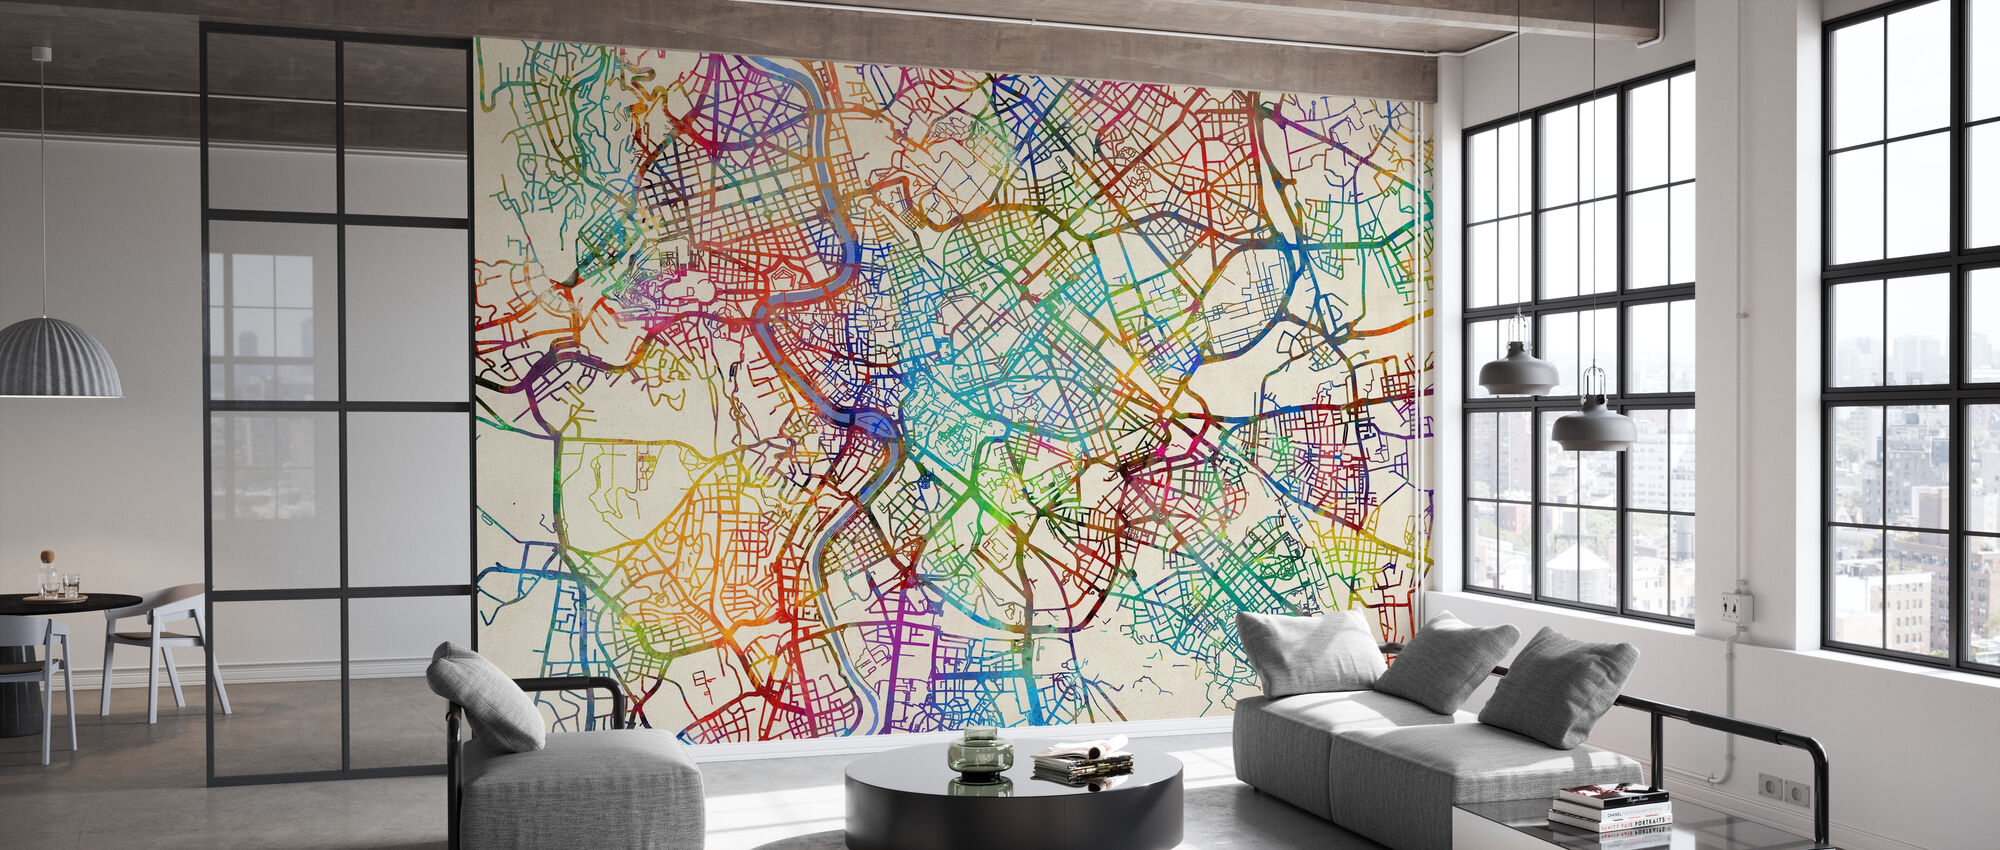 Rome Italy Street Map - Wallpaper - Office